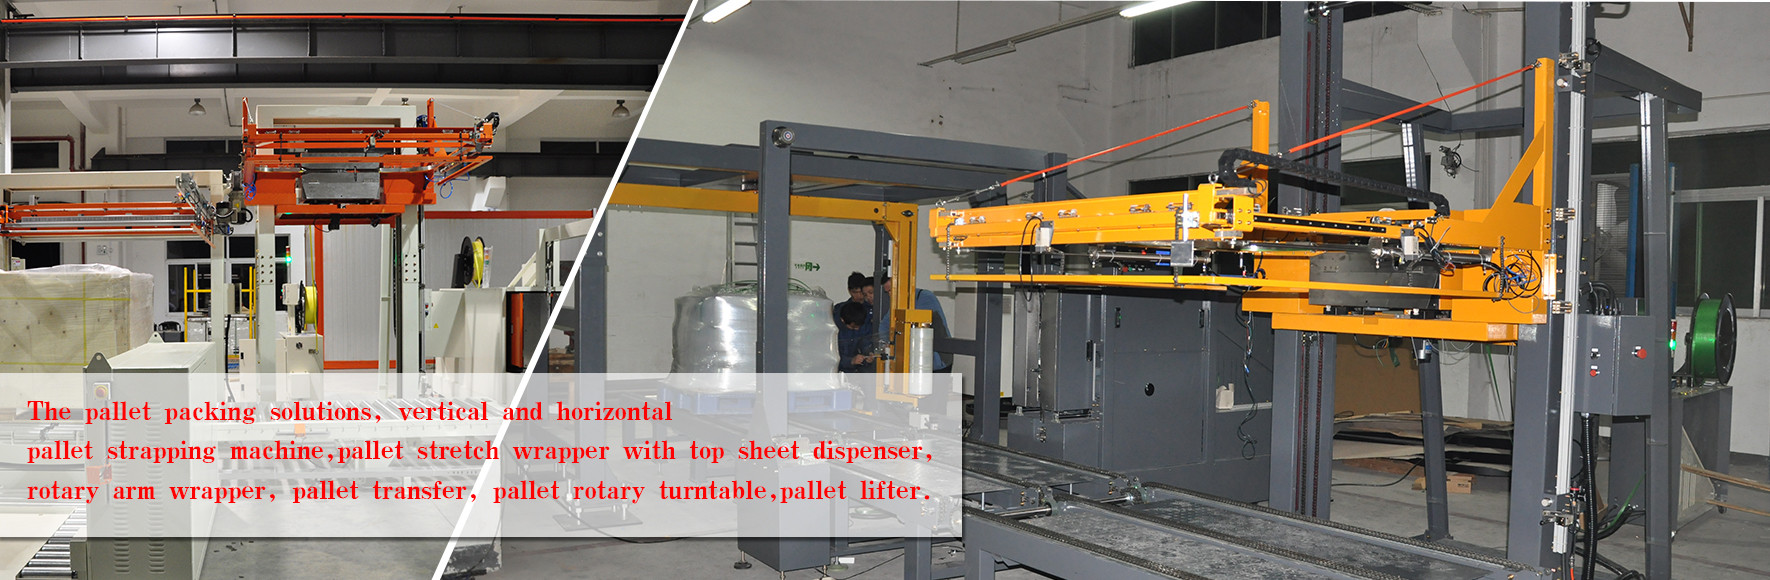 robopac siat wulftec Arpac Cyklop Foxpkg Lantech stretch wrapper case pallet strapping machine